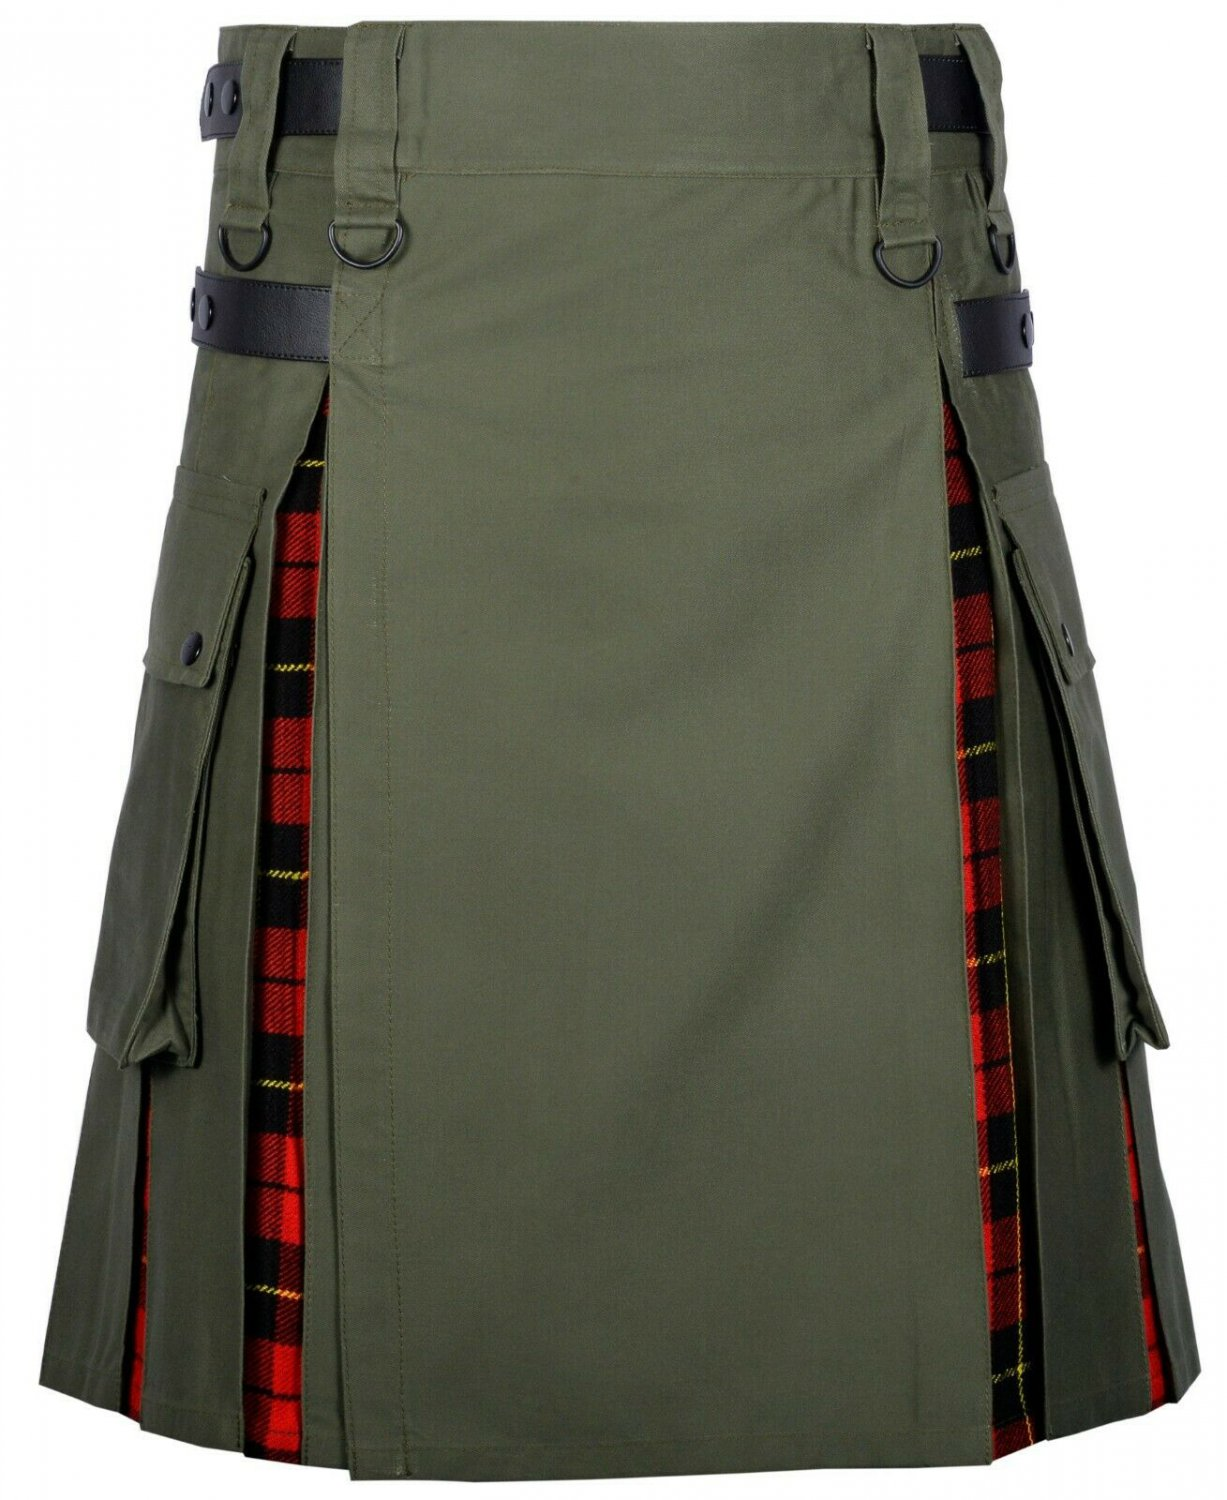 50 Size Olive Green Cotton-Wallace tartan Scottish Utility Cargo Hybrid Cotton Kilt For Men